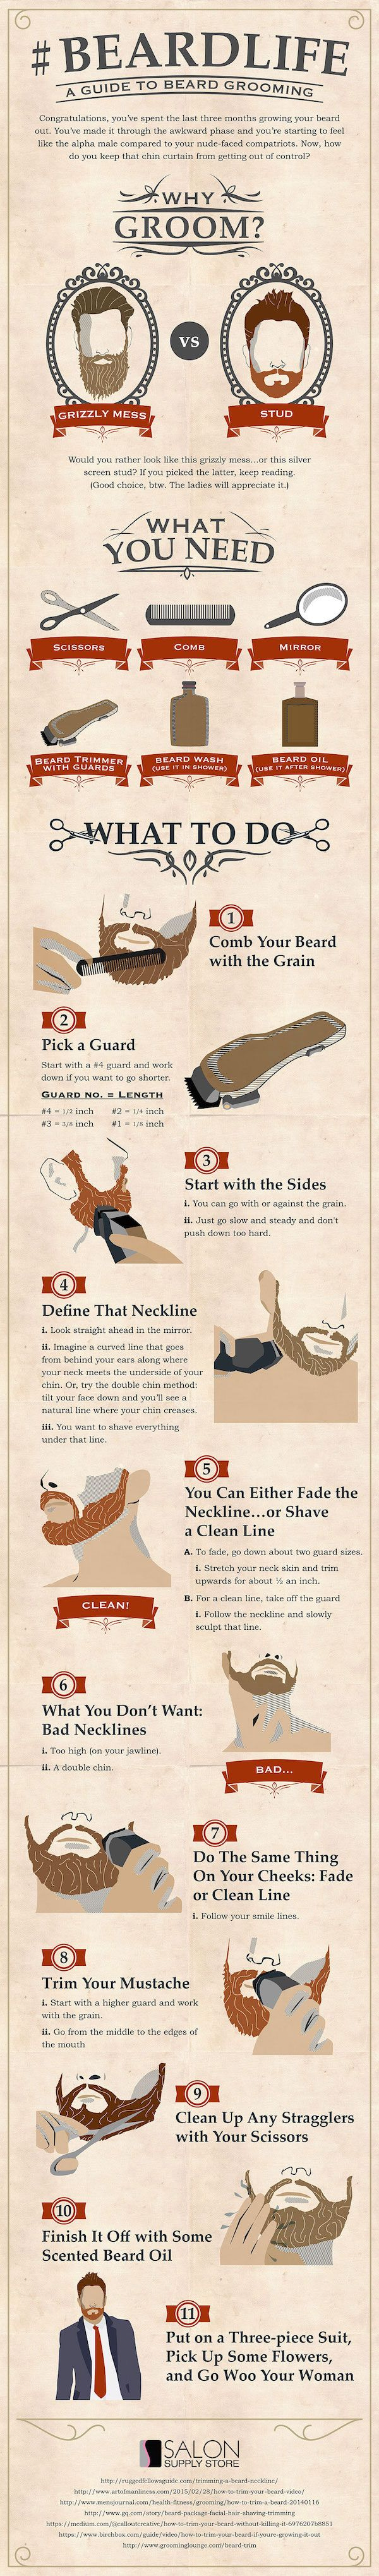 Infographic: A Handy Men's Guide To Keeping Your Beard Well-Groomed - DesignTAXI.com